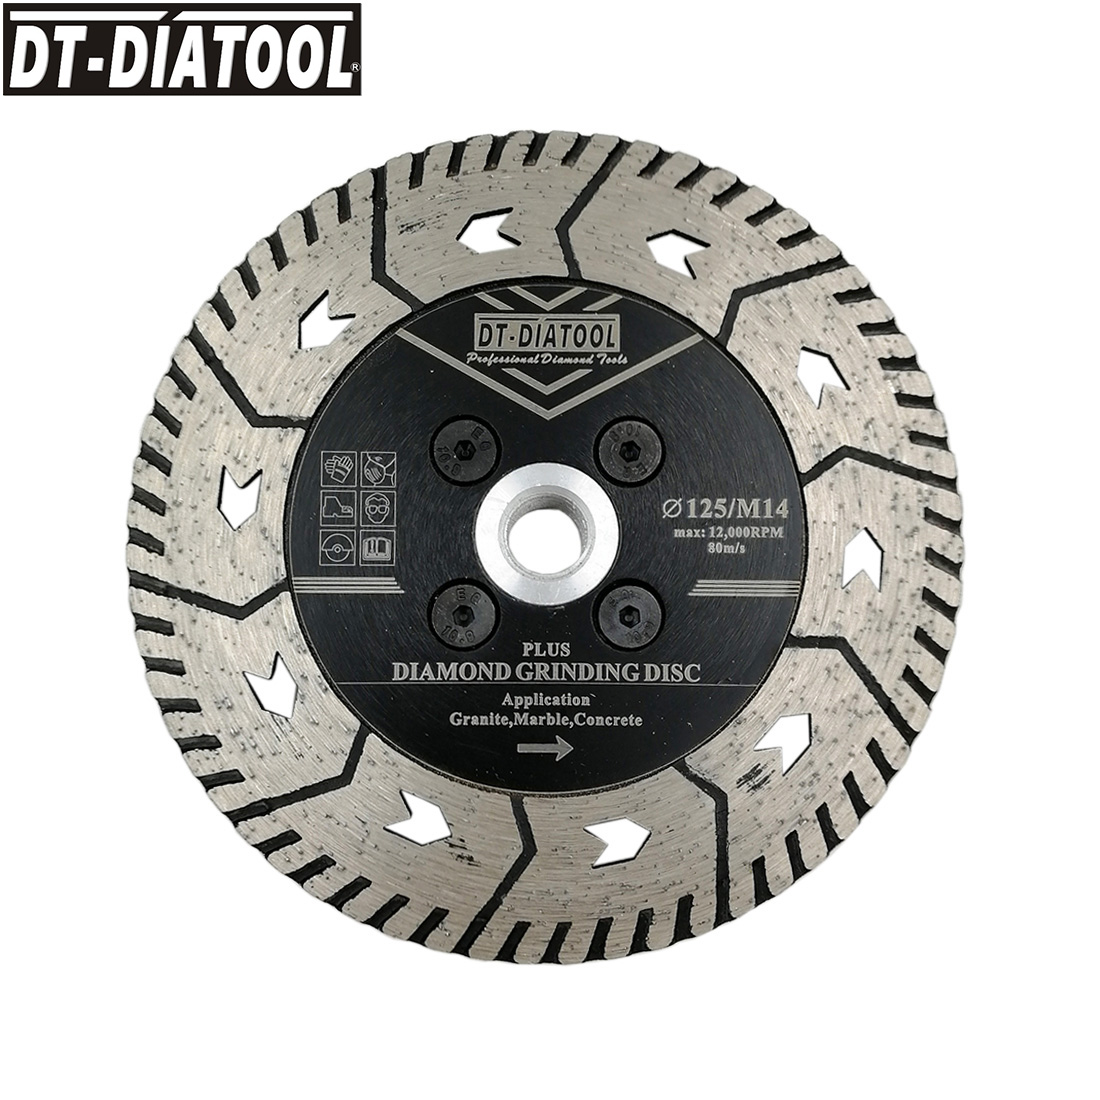 DT-DIATOOL 1pc 5inch/125mm Diamond Cutting Disc Grindng Saw Blades with M14 Thread for Grinding Granite Marble Concrete wheel